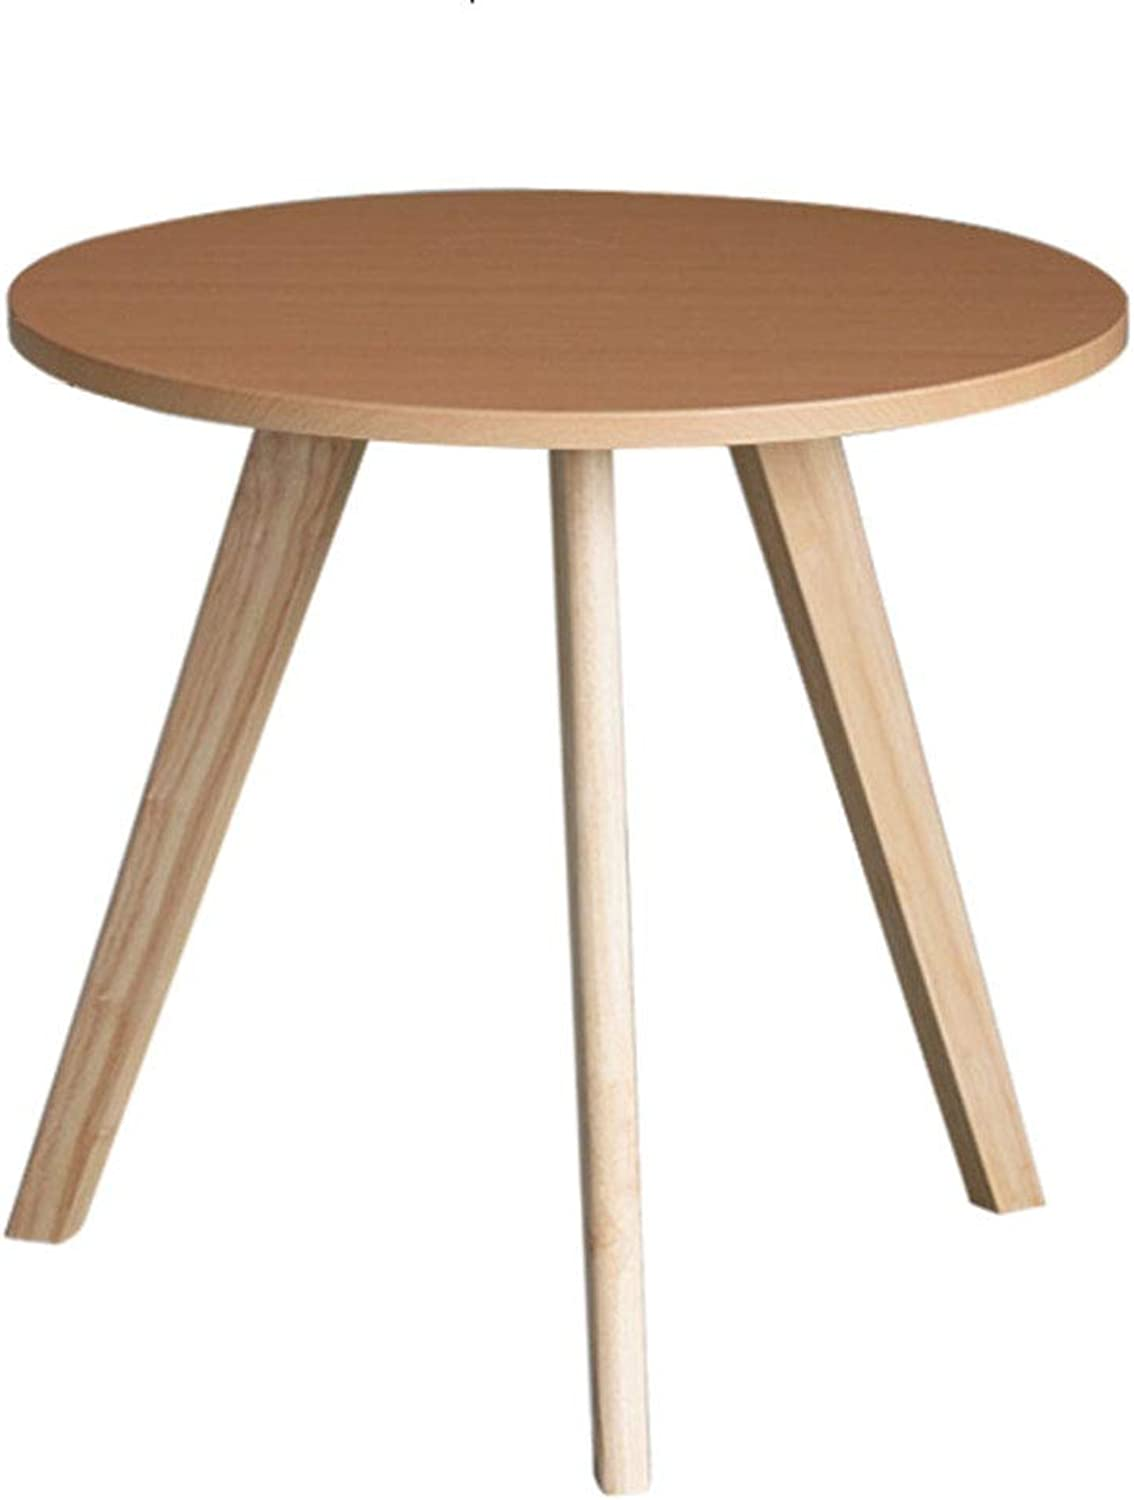 GWDJ Side Table, Solid Wood Round Stable Side Table Mini Practical Sofa Side Cabinet Bedside Table Corner Space-Saving Small Coffee Table Corner Table (color   A, Size   40  45CM)